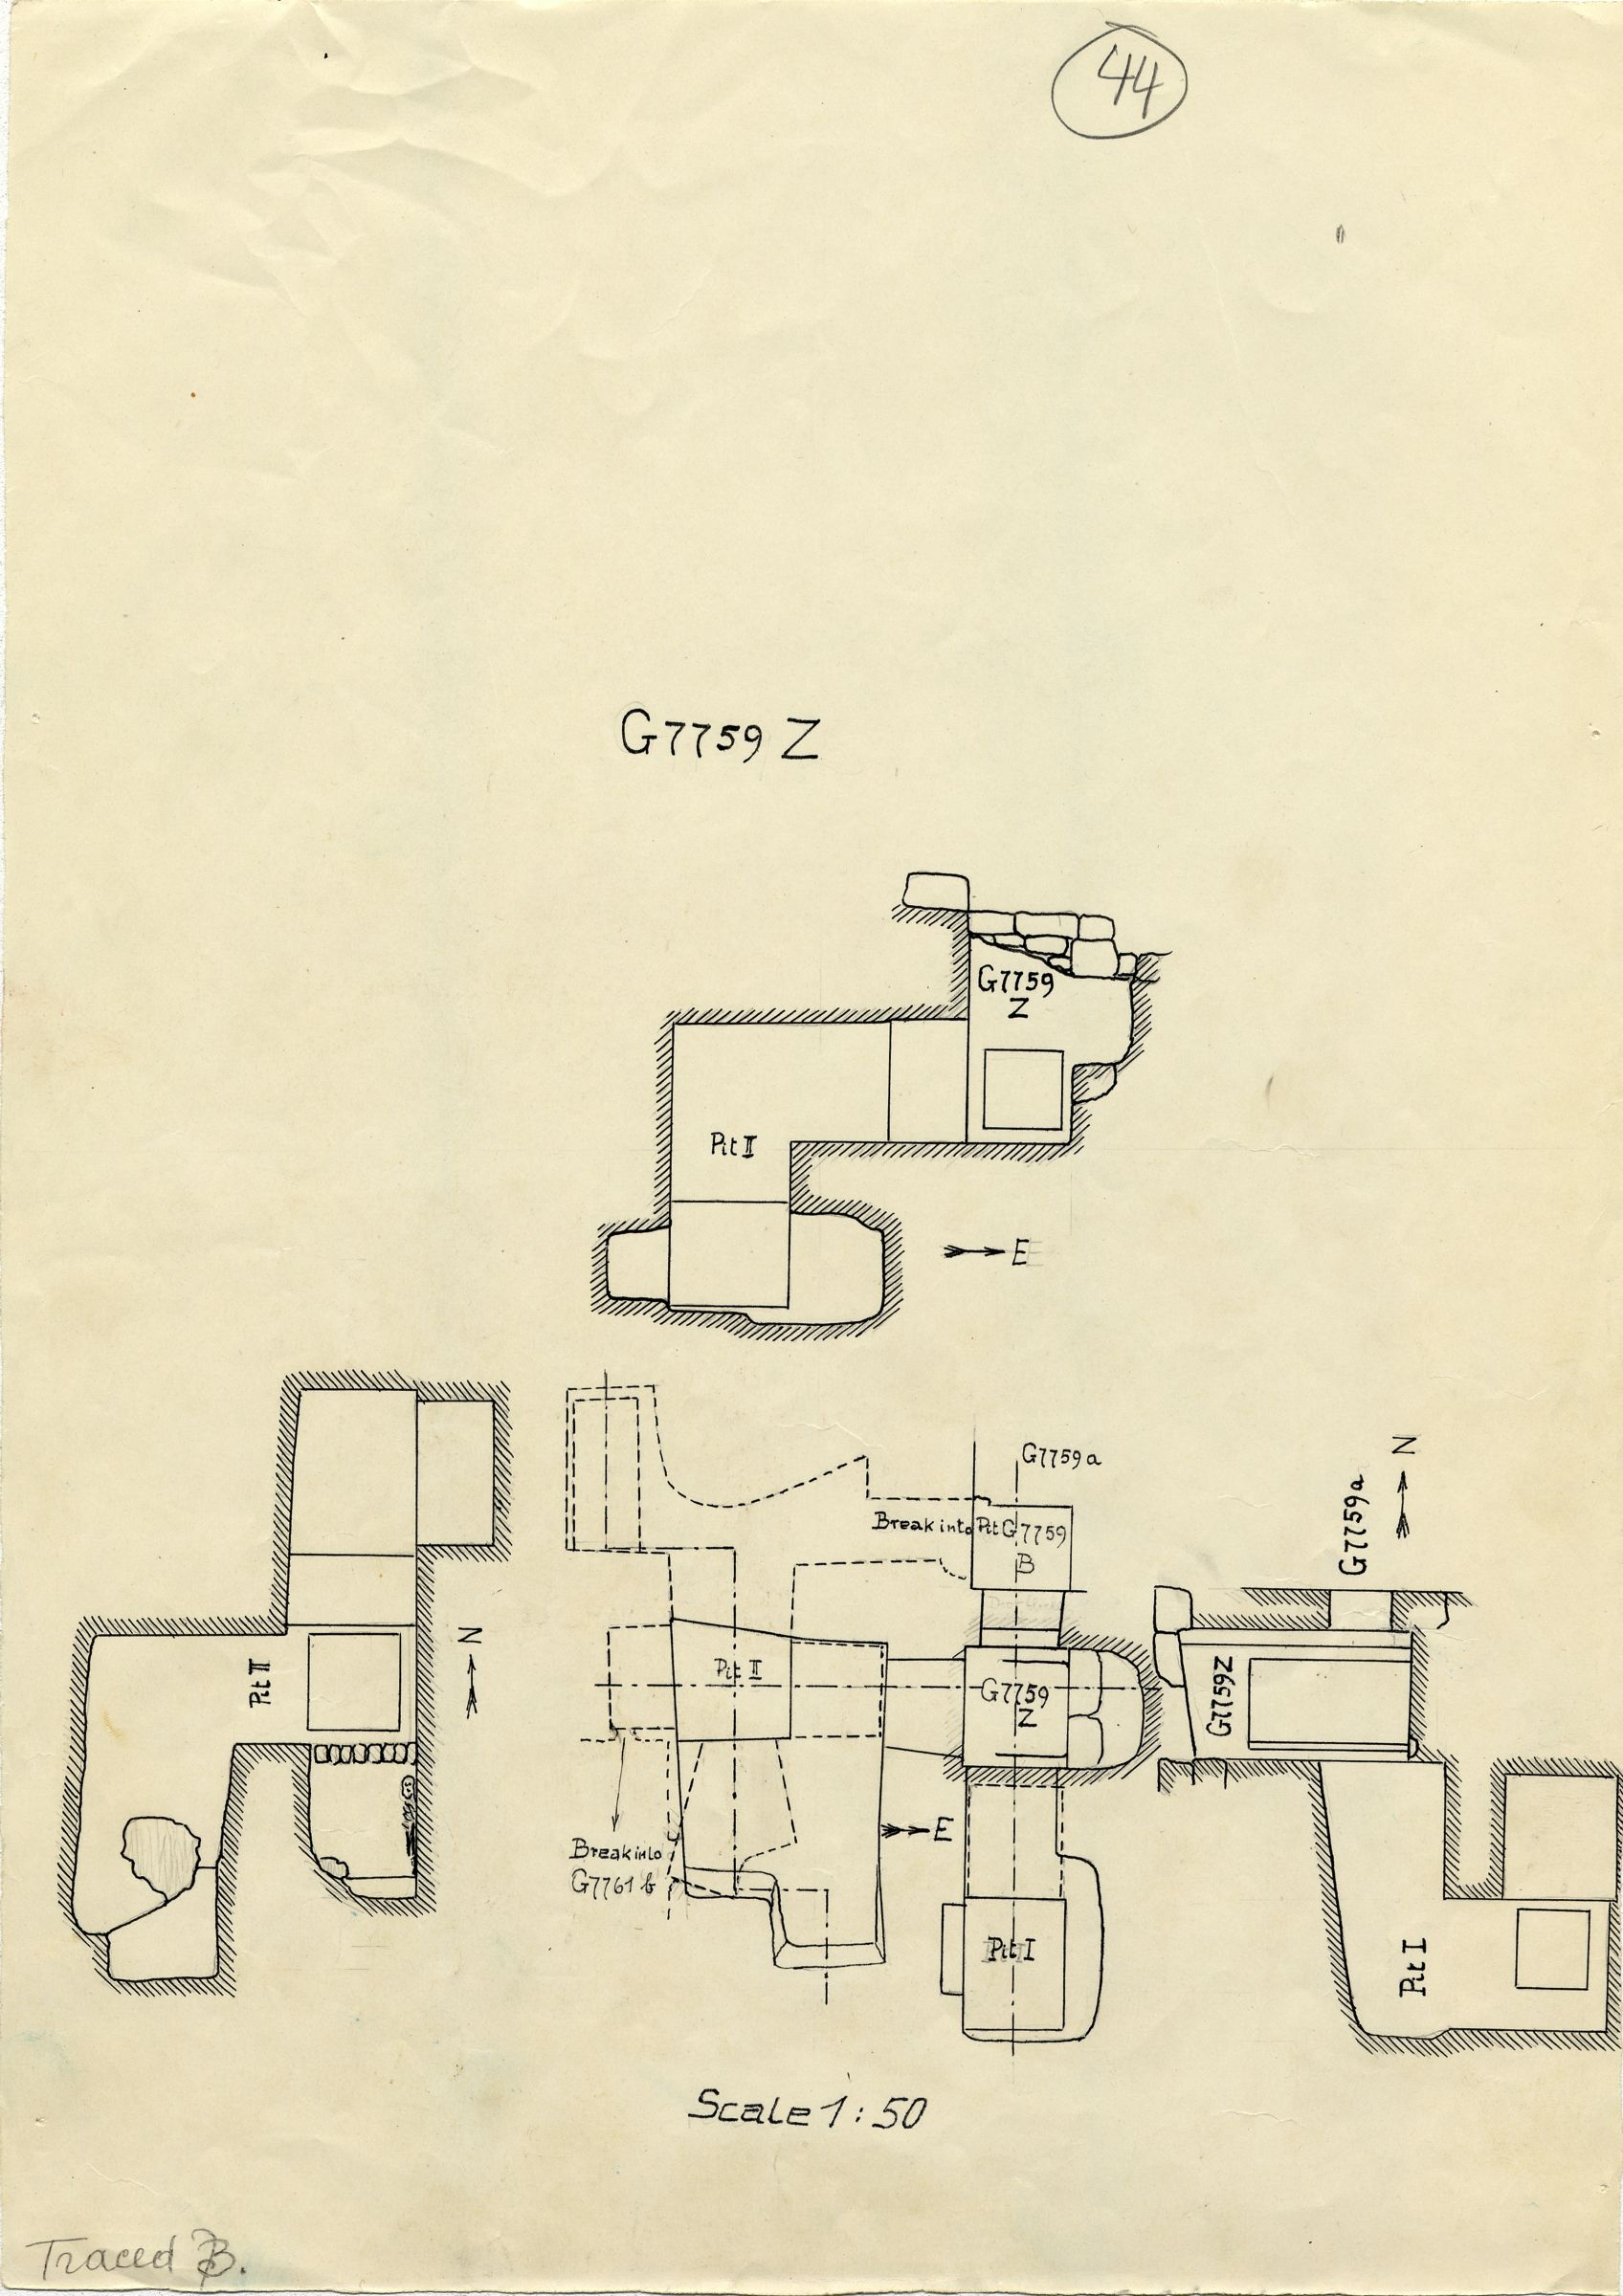 Maps and plans: G 7759, Shaft Z